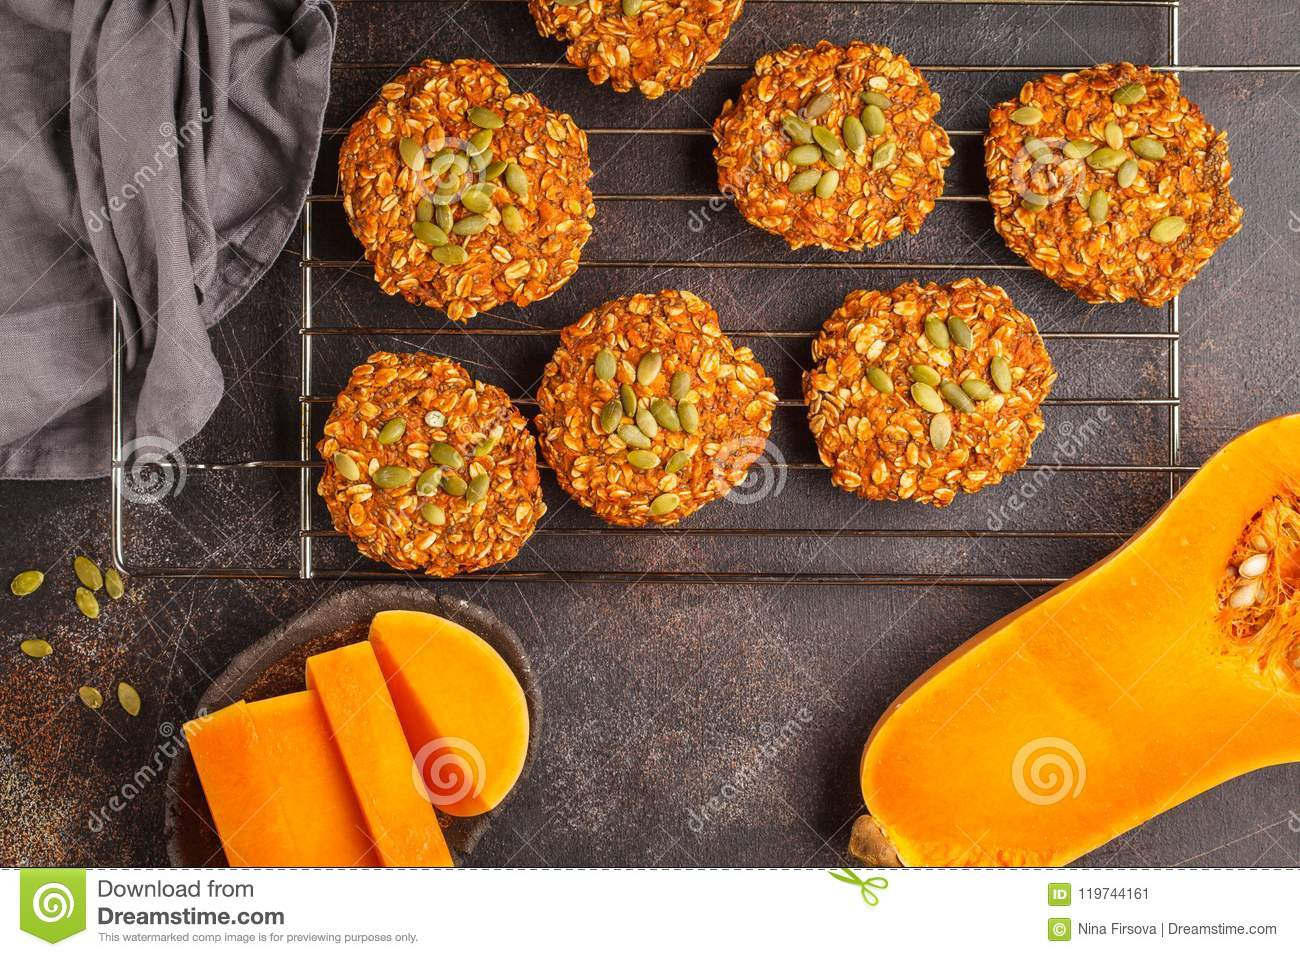 vegan oatmeal pumpkin cookies on dark background, halloween food